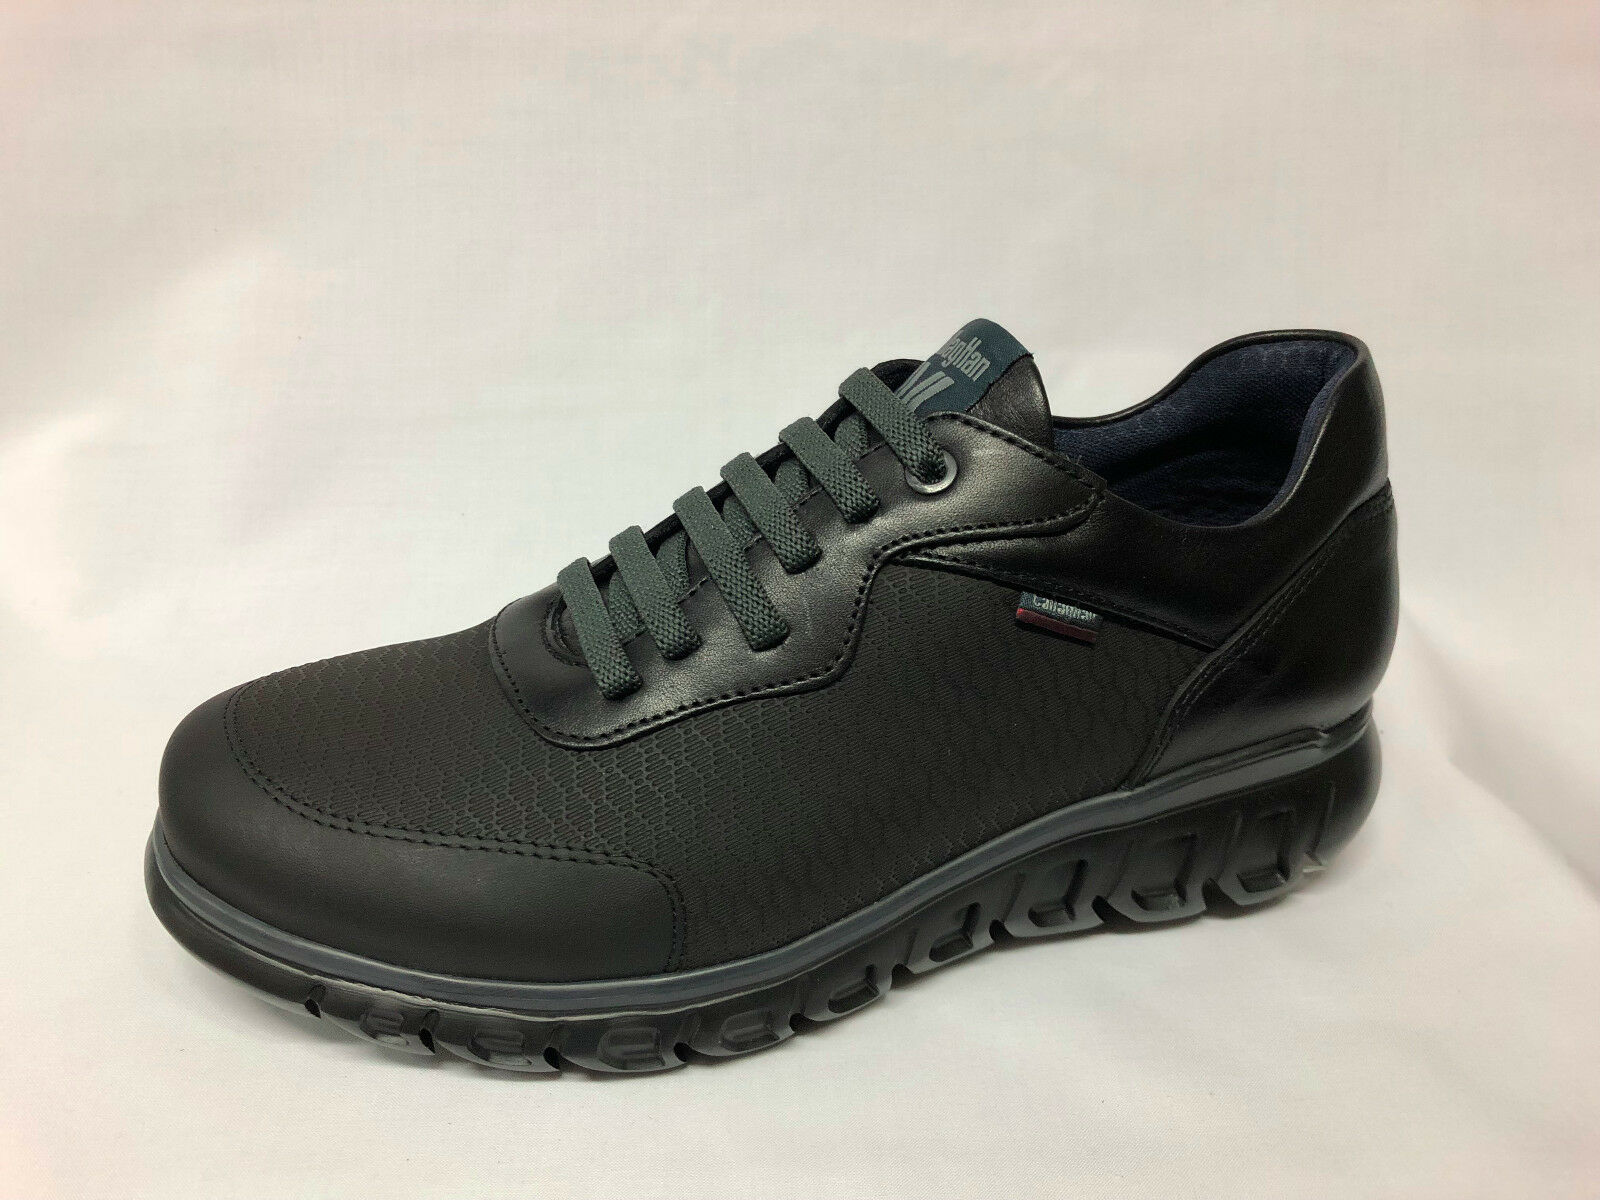 shoes Sneakers Callaghan 12900 pelle nera listino - 20%